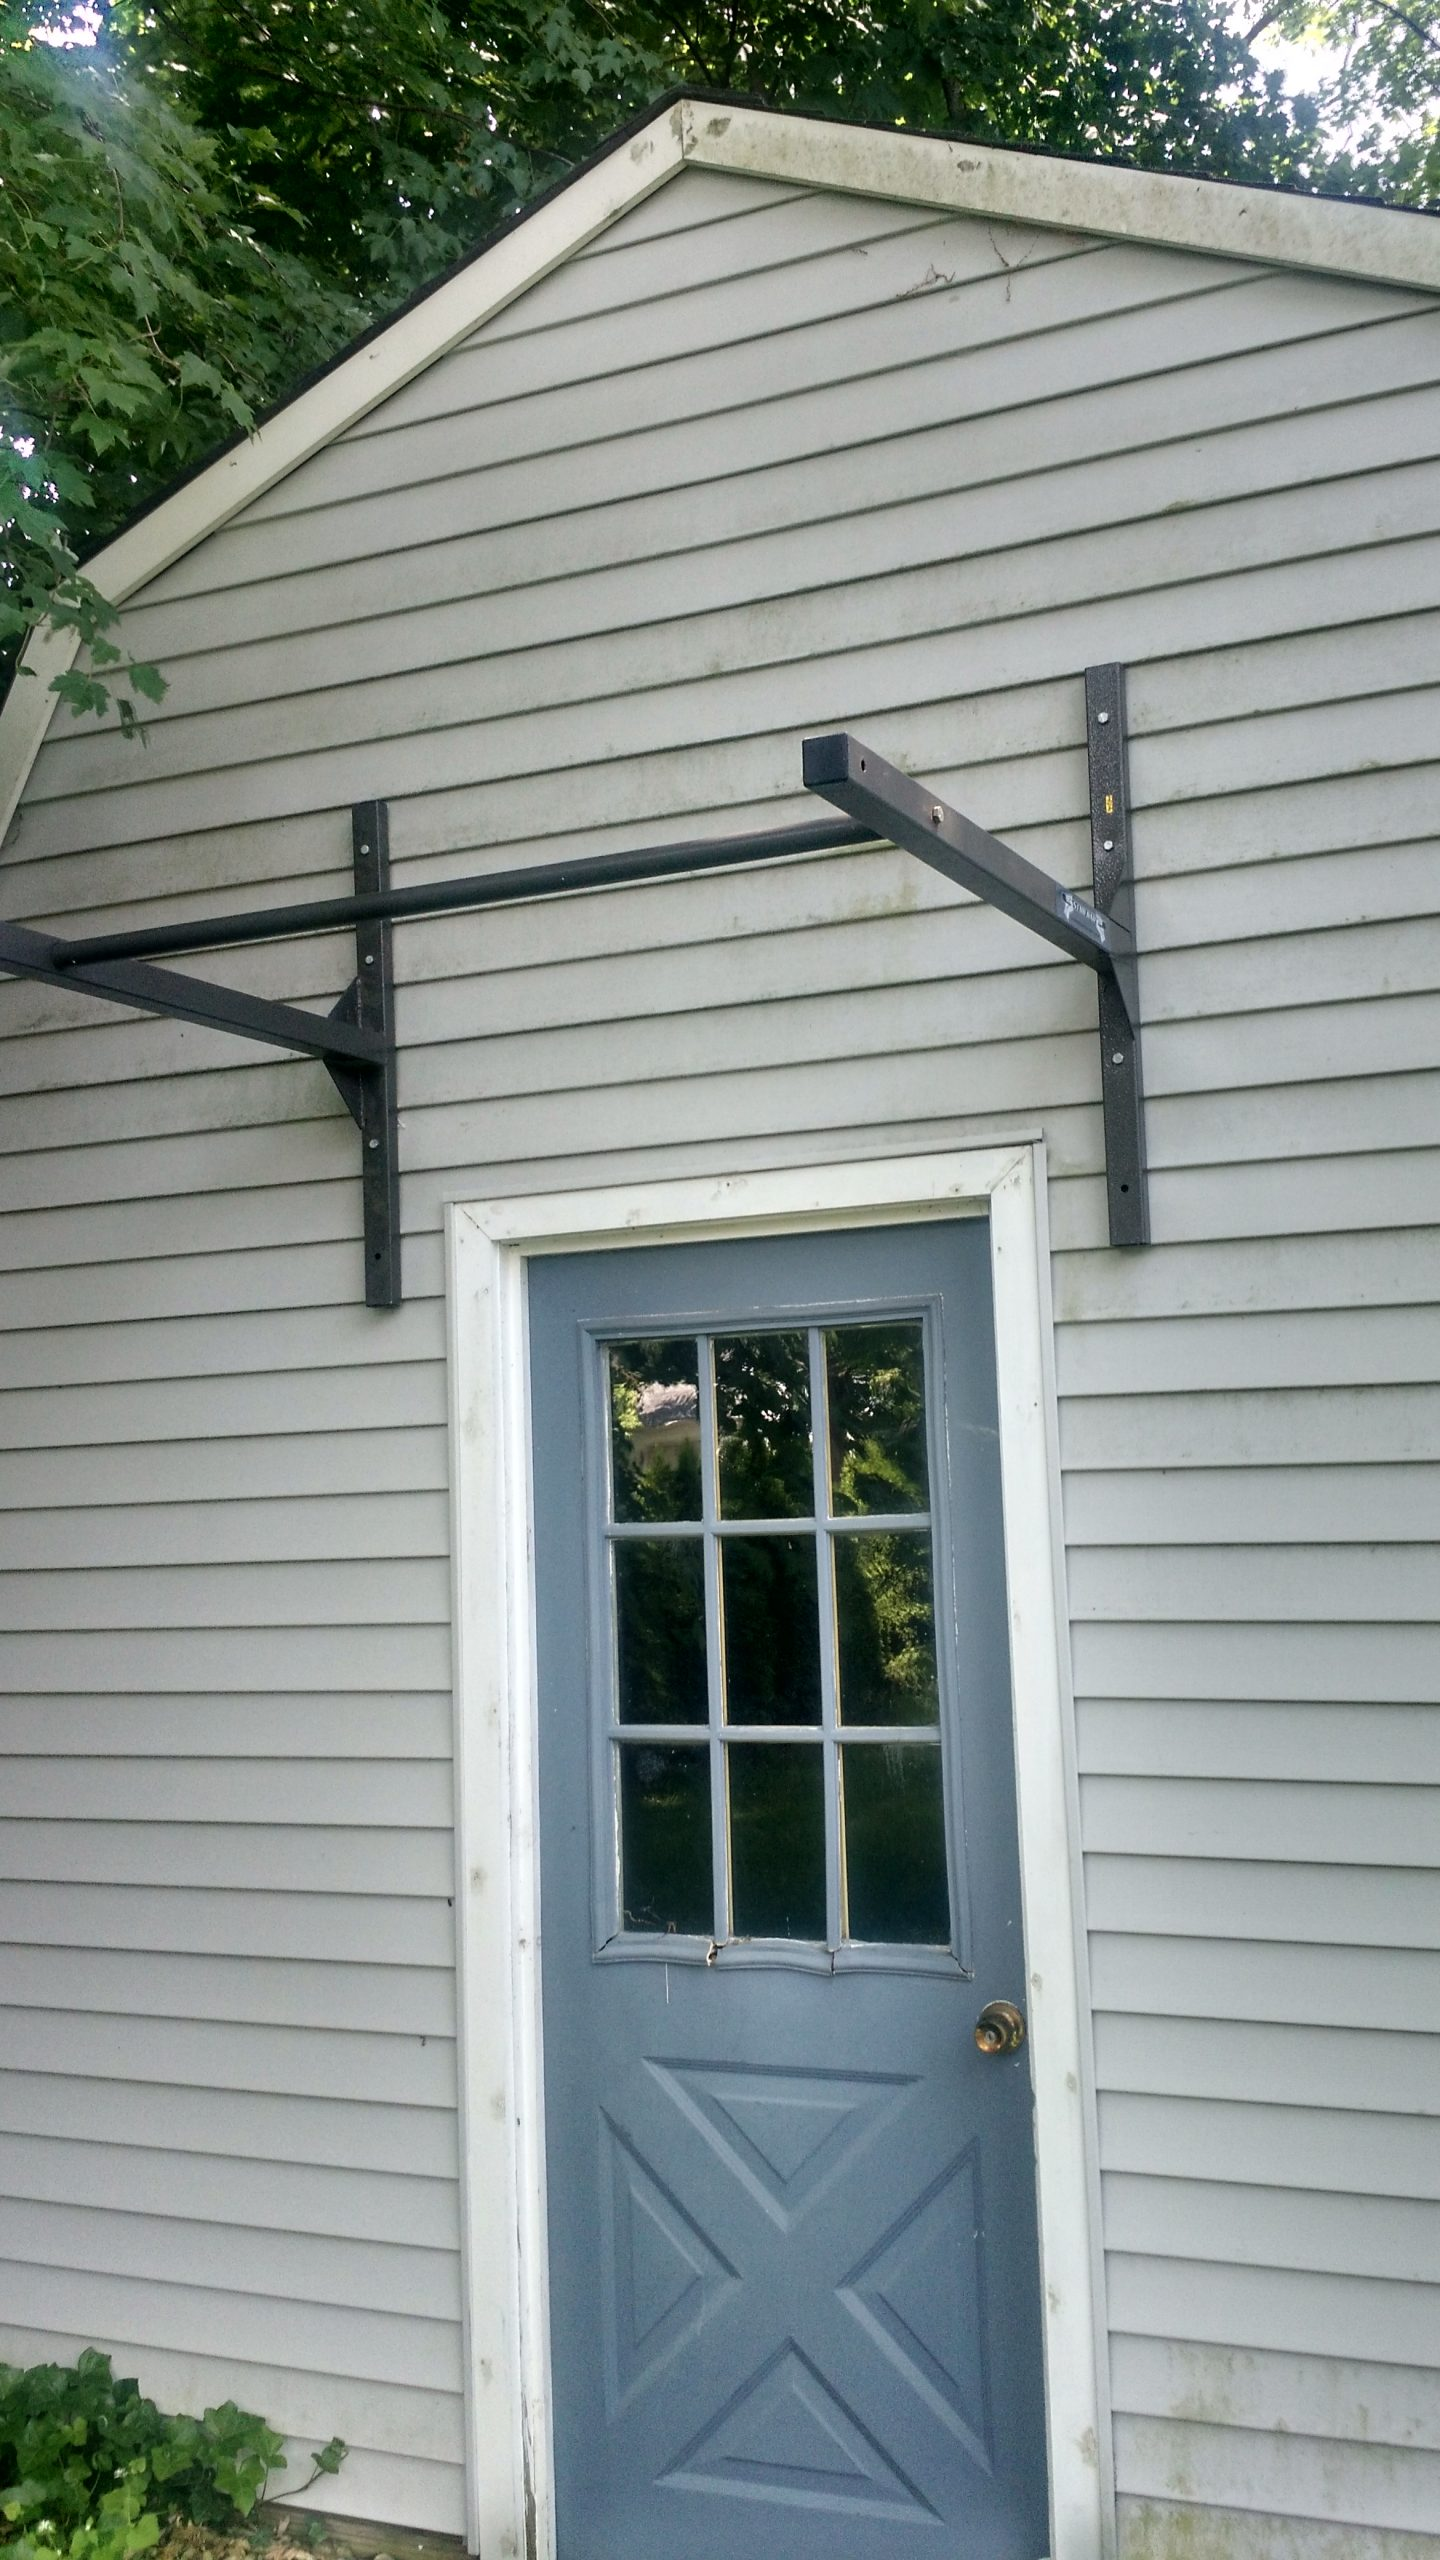 Outdoor pull up bar